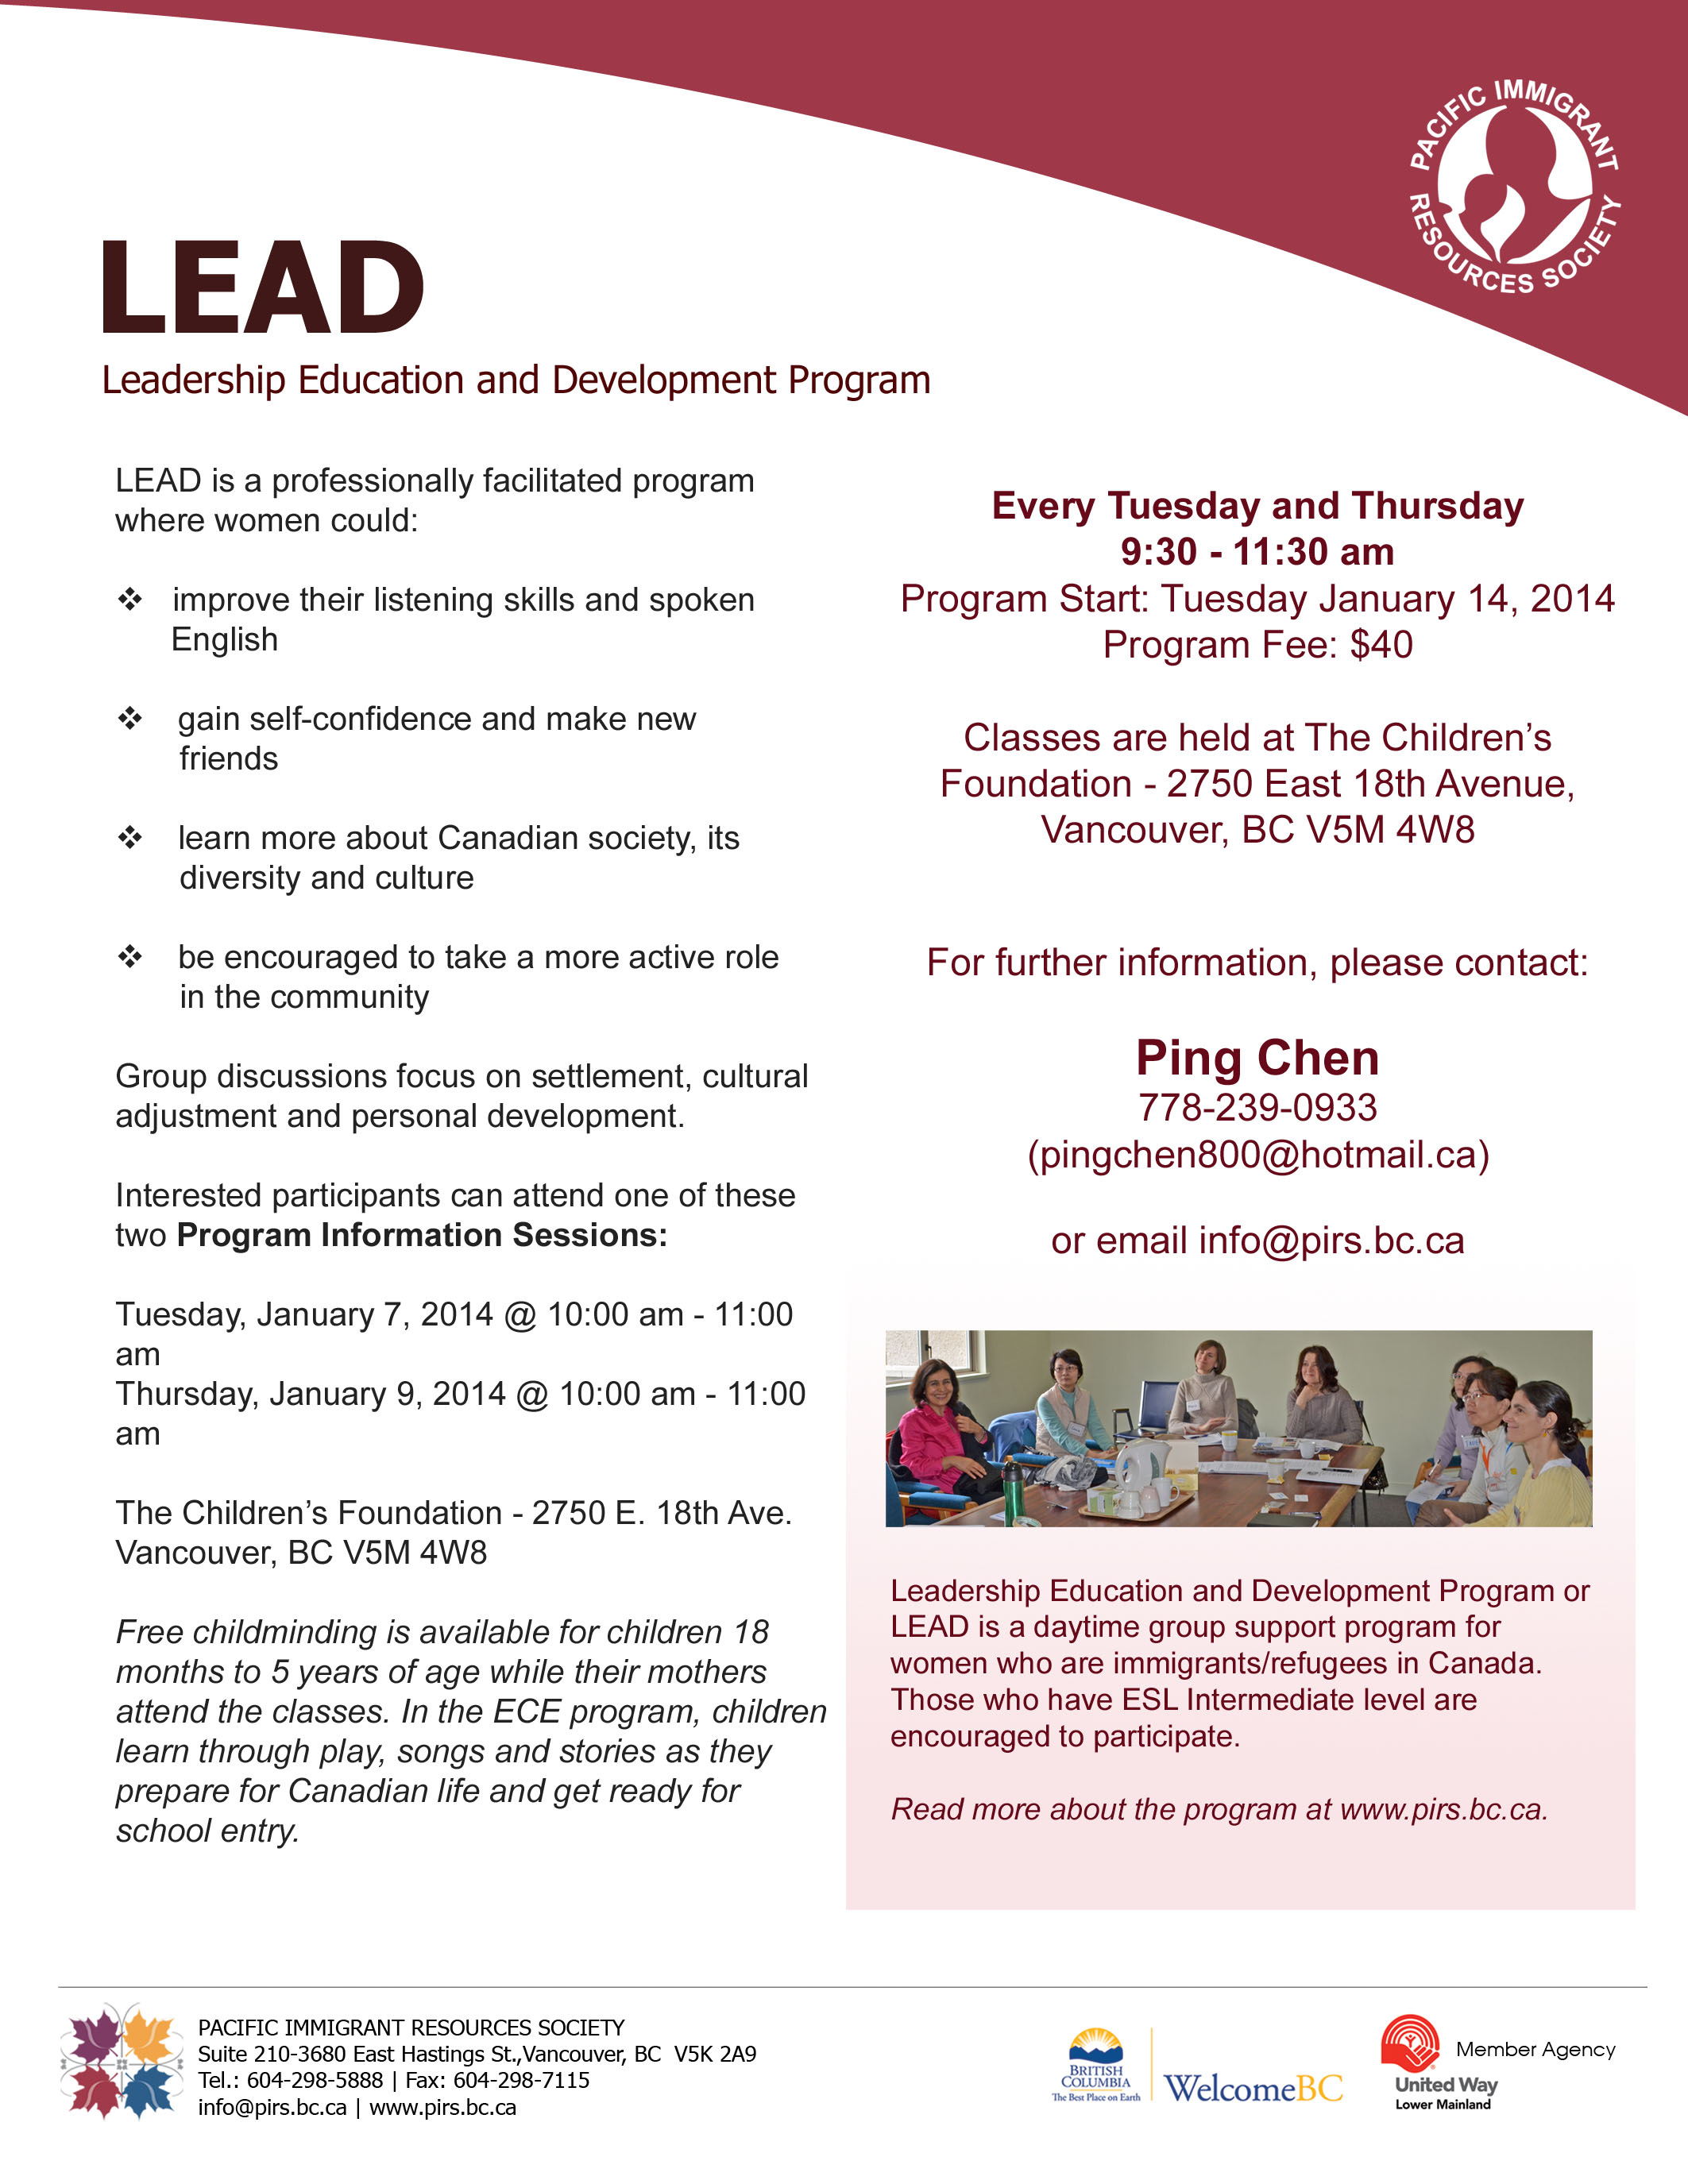 LEAD Flyer - Winter 2014